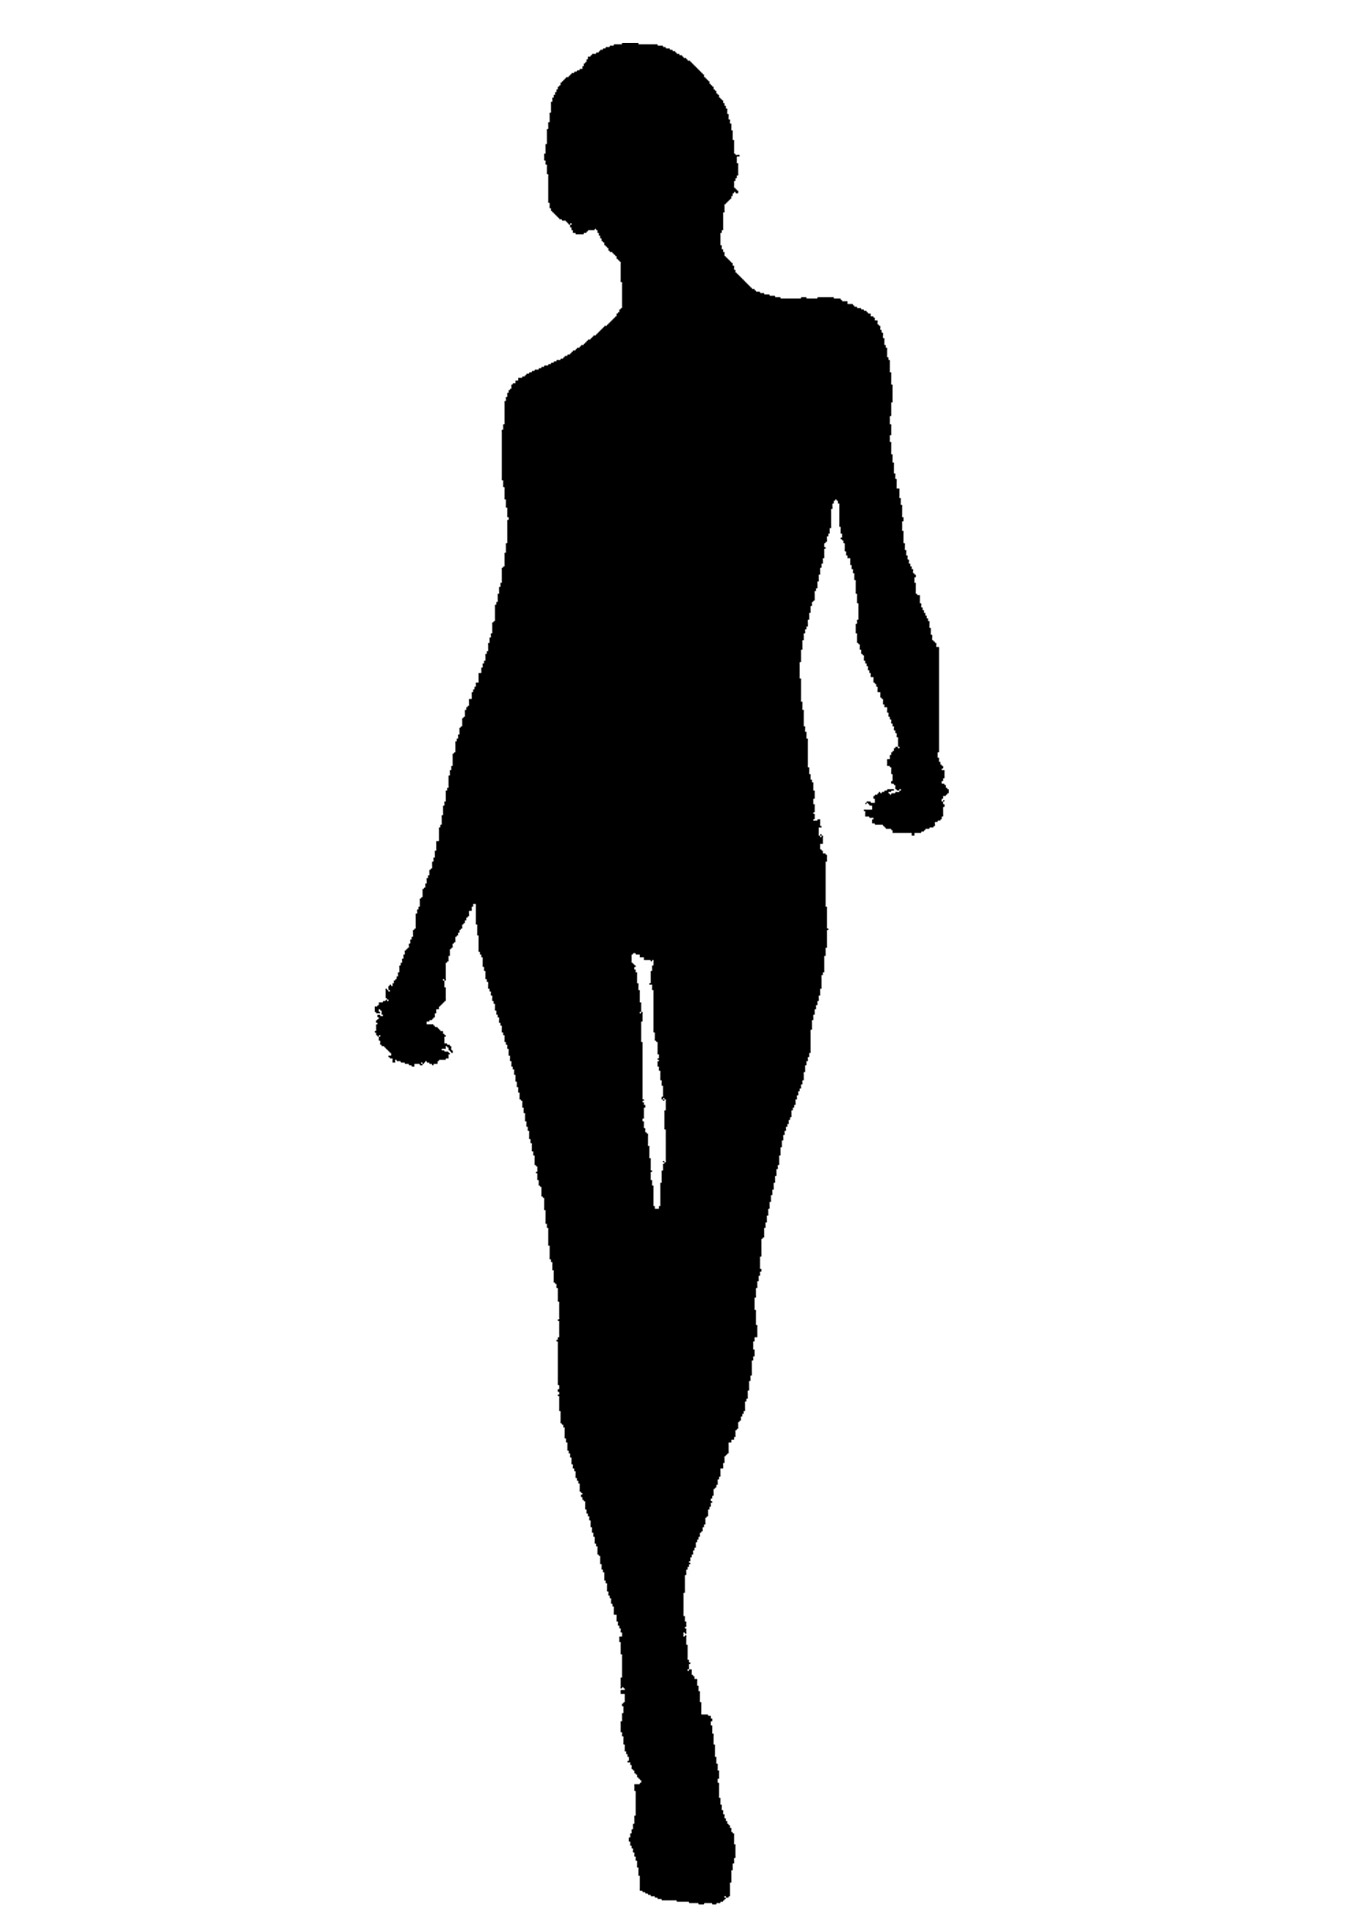 Silhouette Of A Woman Walking Away